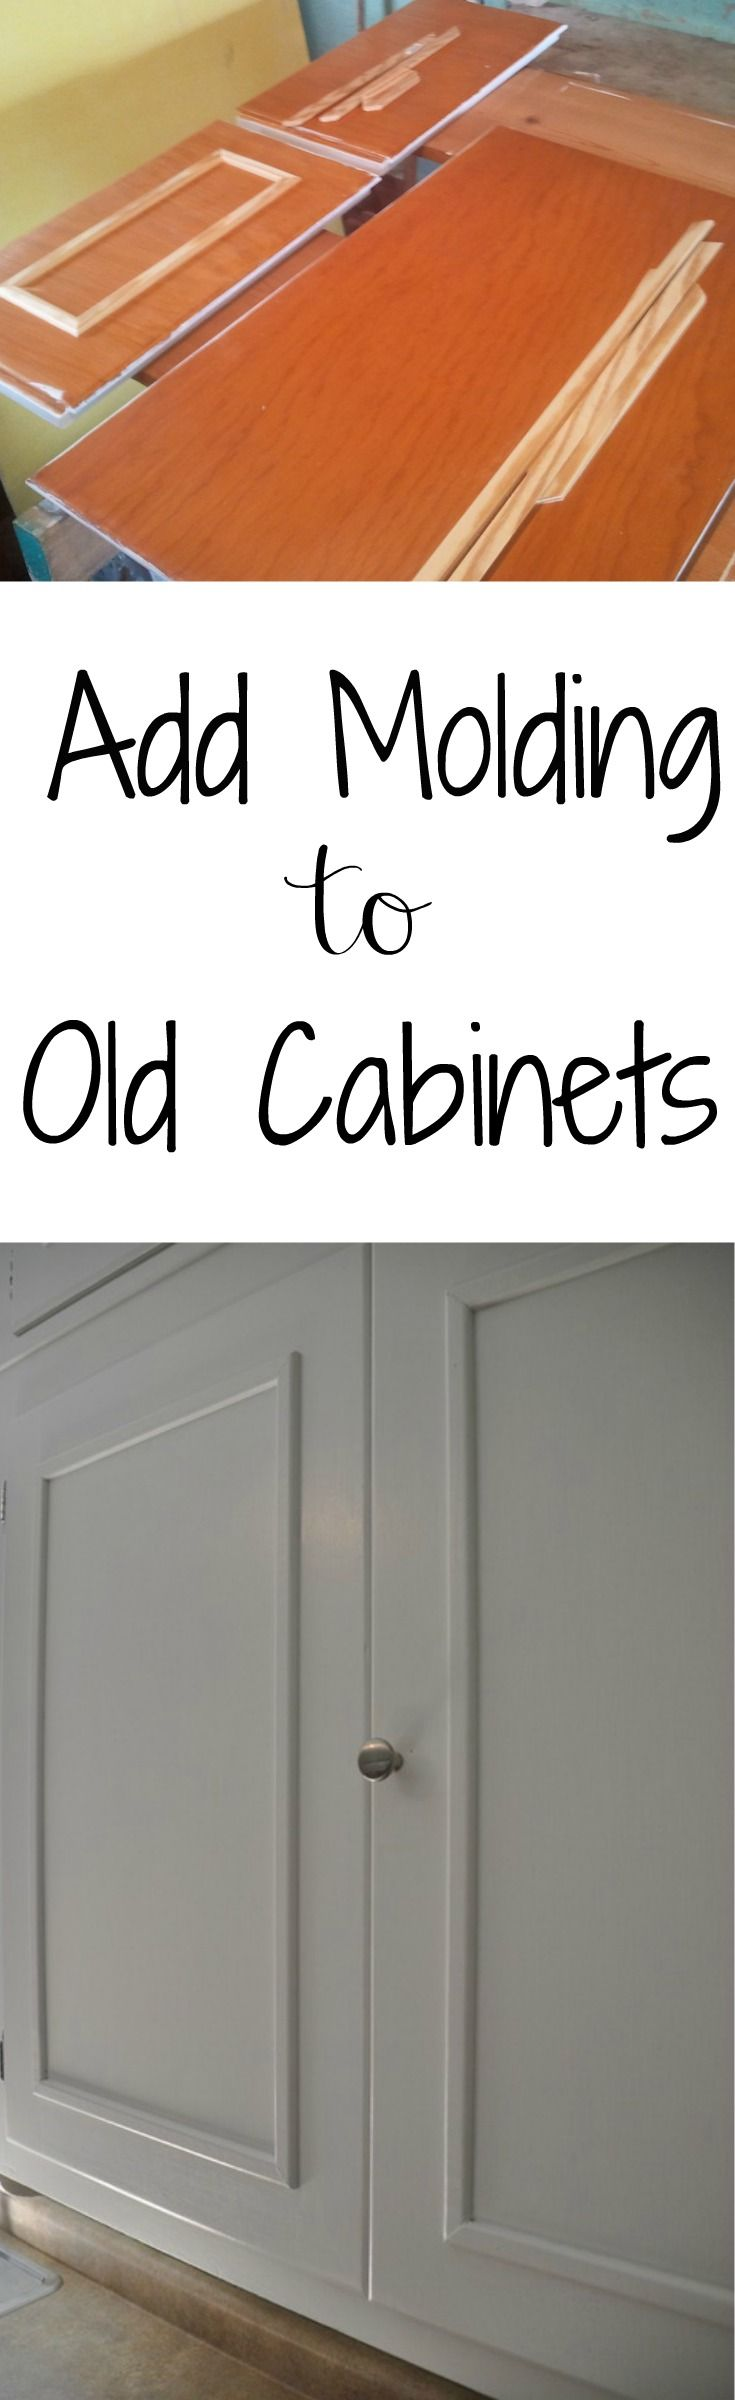 Homemade kitchen cabinets ideas - Add Molding To Old Cabinets Great Way To Update Dated Kitchens